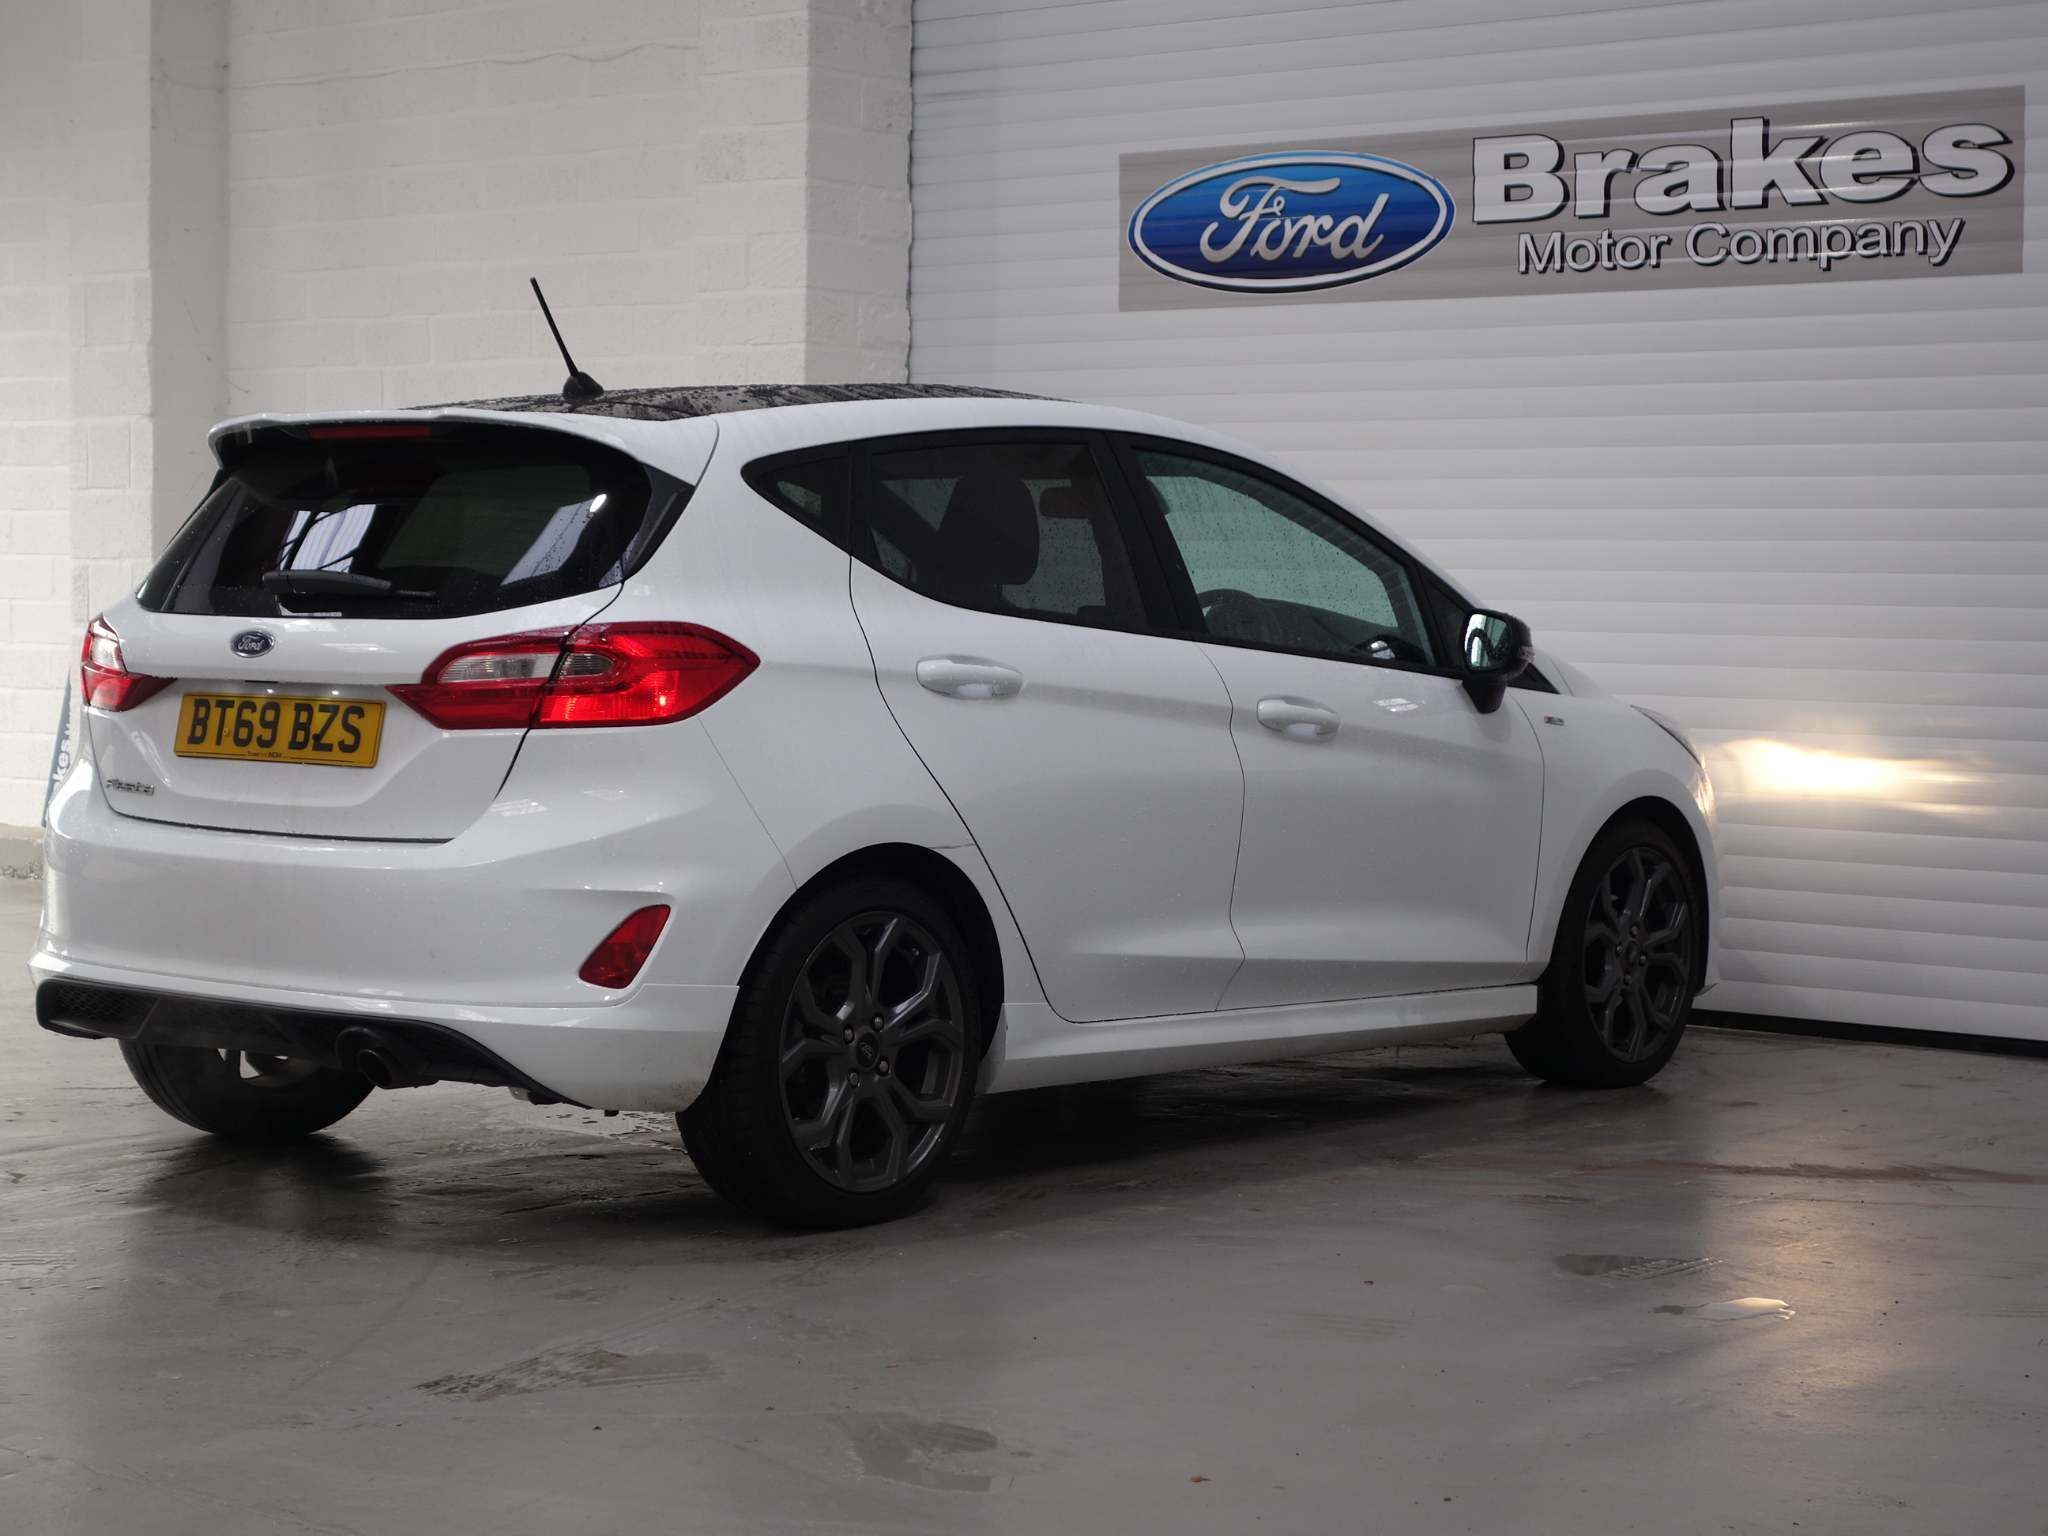 Ford Fiesta 1.0T EcoBoost ST-Line Auto (s/s) 5dr – BT69BZS